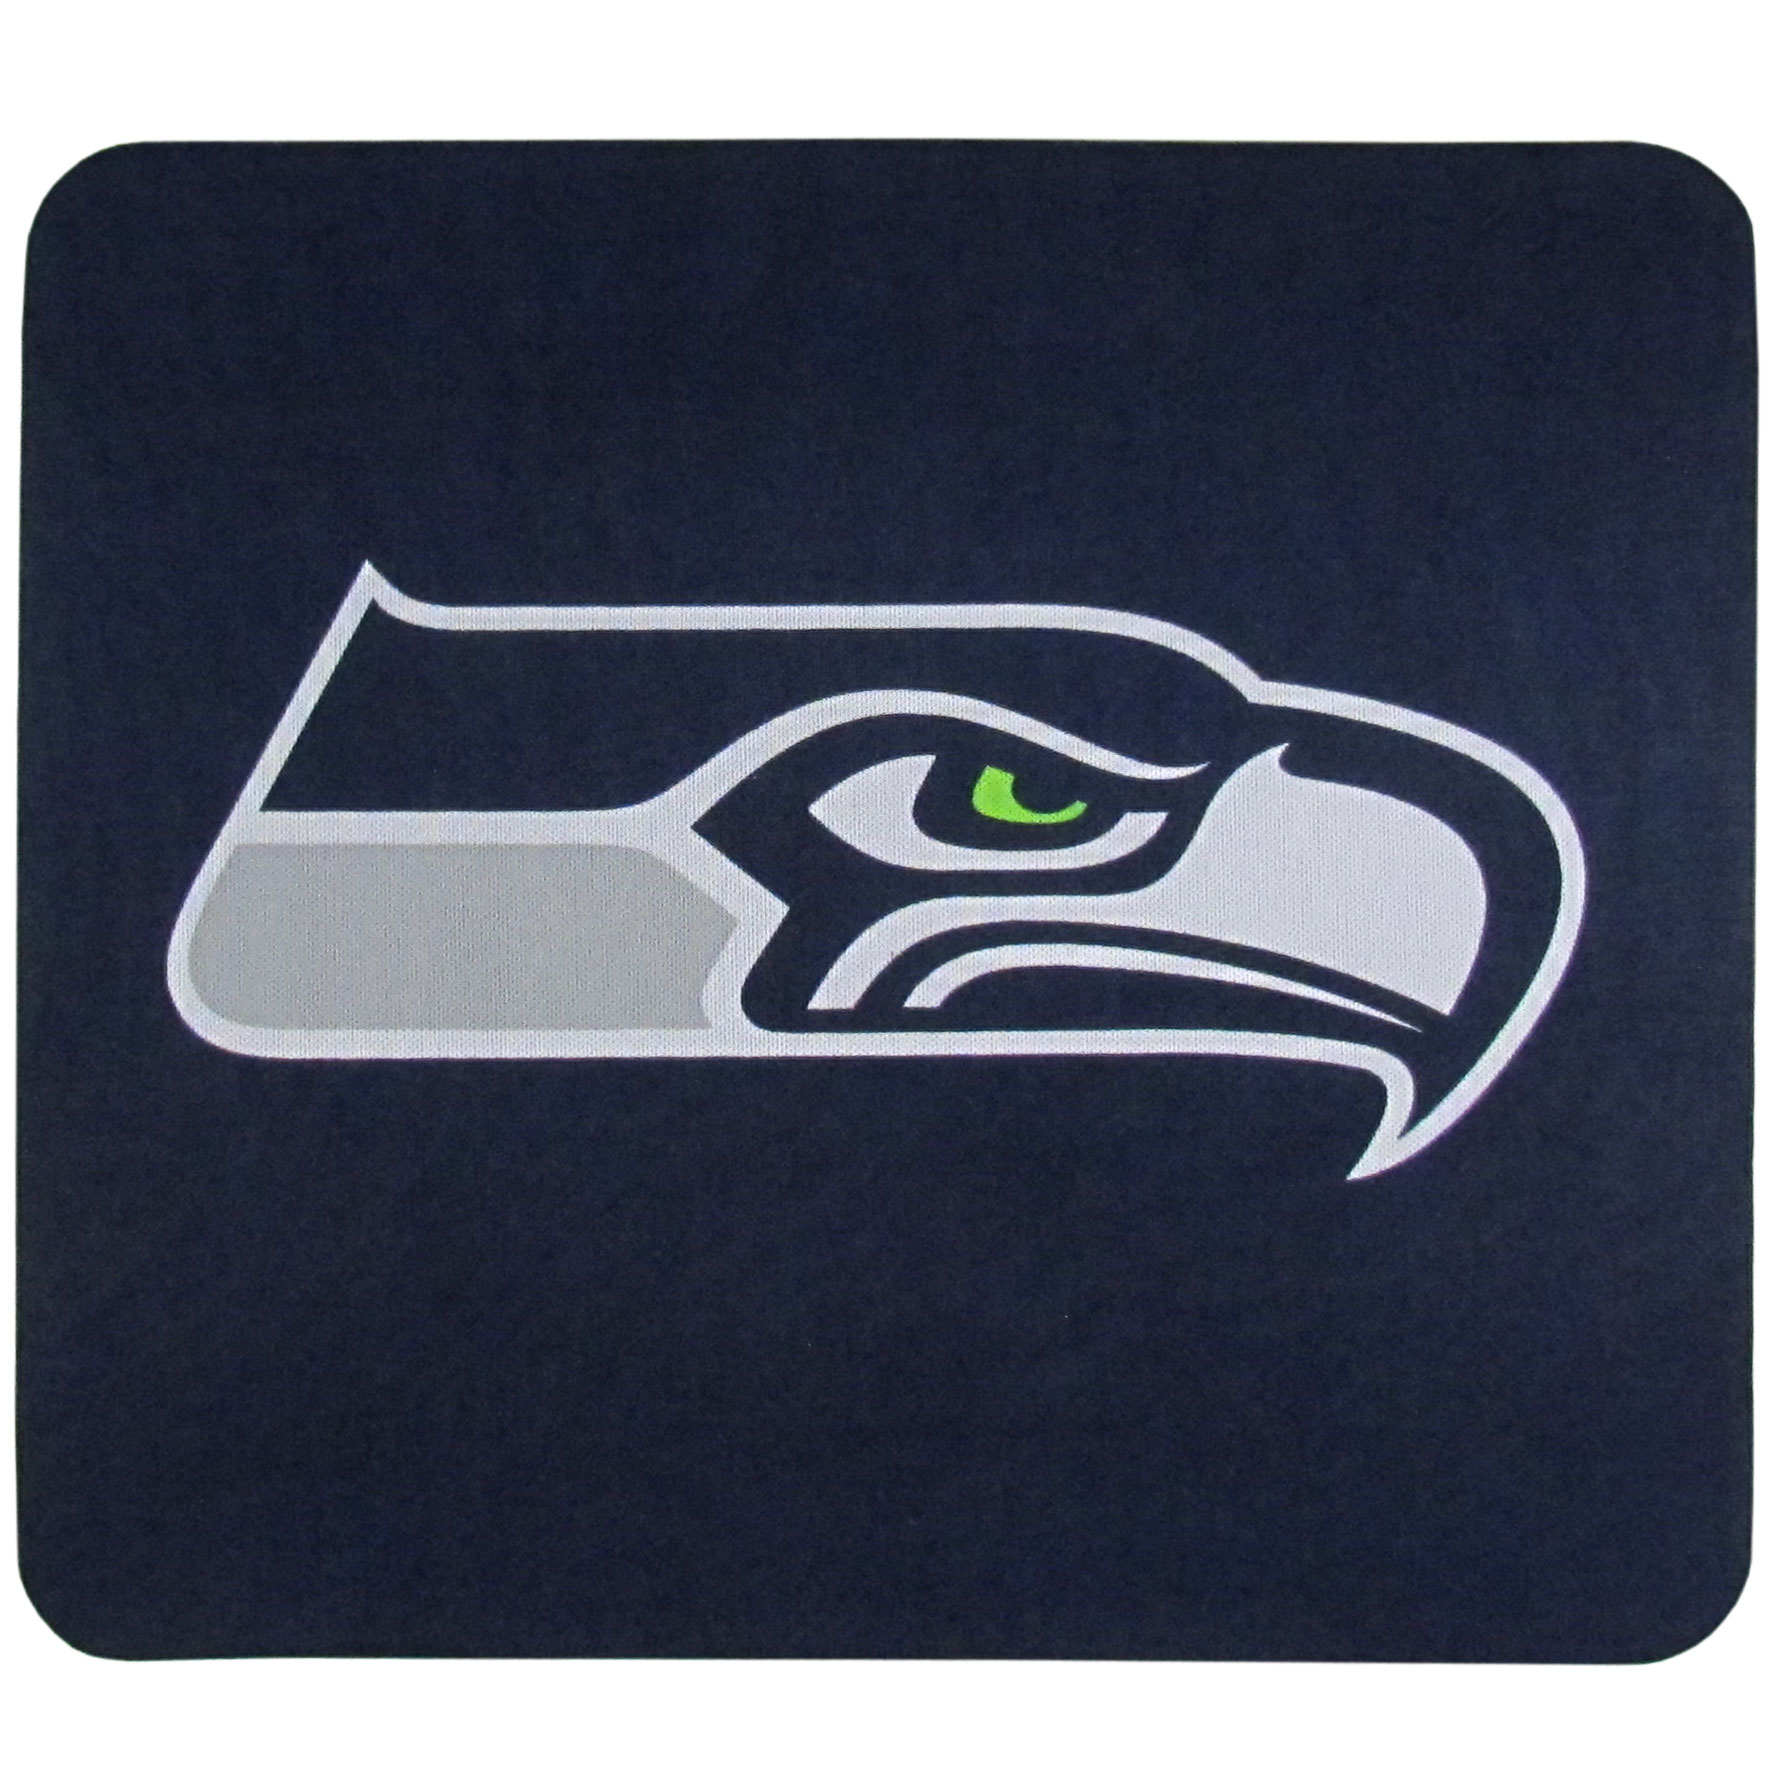 Seattle Seahawks Mouse Pads - Our licensed neoprene mouse pads have the Seattle Seahawks silk screen on the pad and are 7 x 8 inches in size.